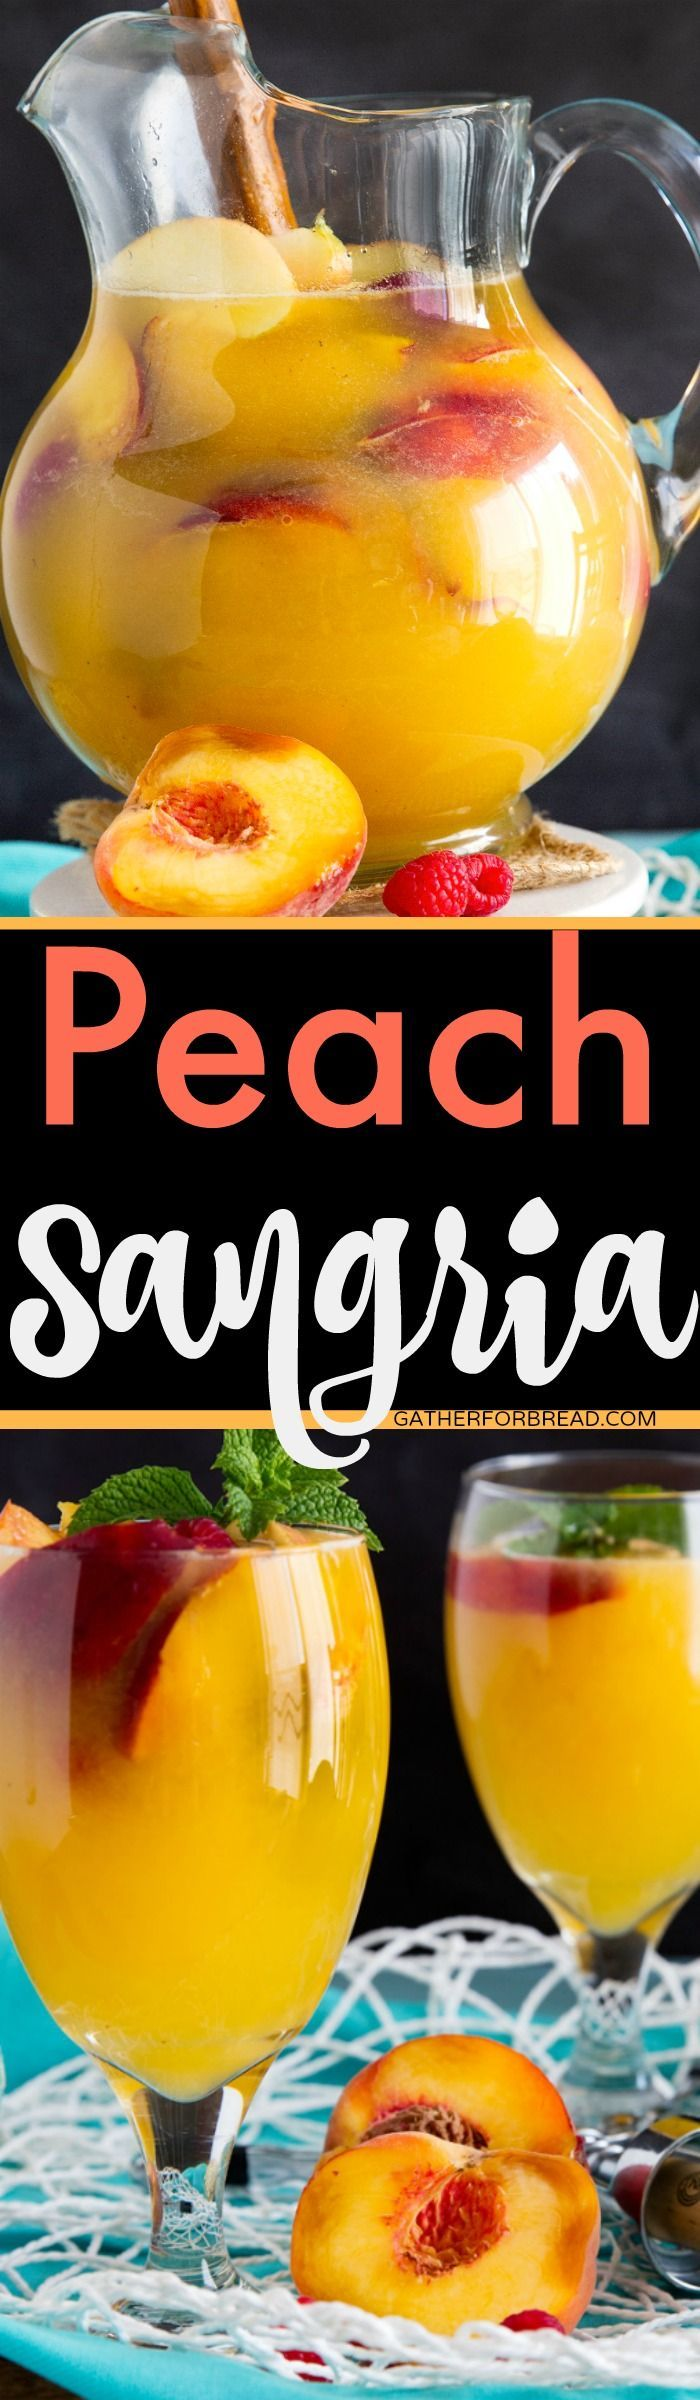 Peach Sangria - Sweet sangria made with fresh peaches. Perfect and refreshing for summer! | gatherforbread.com